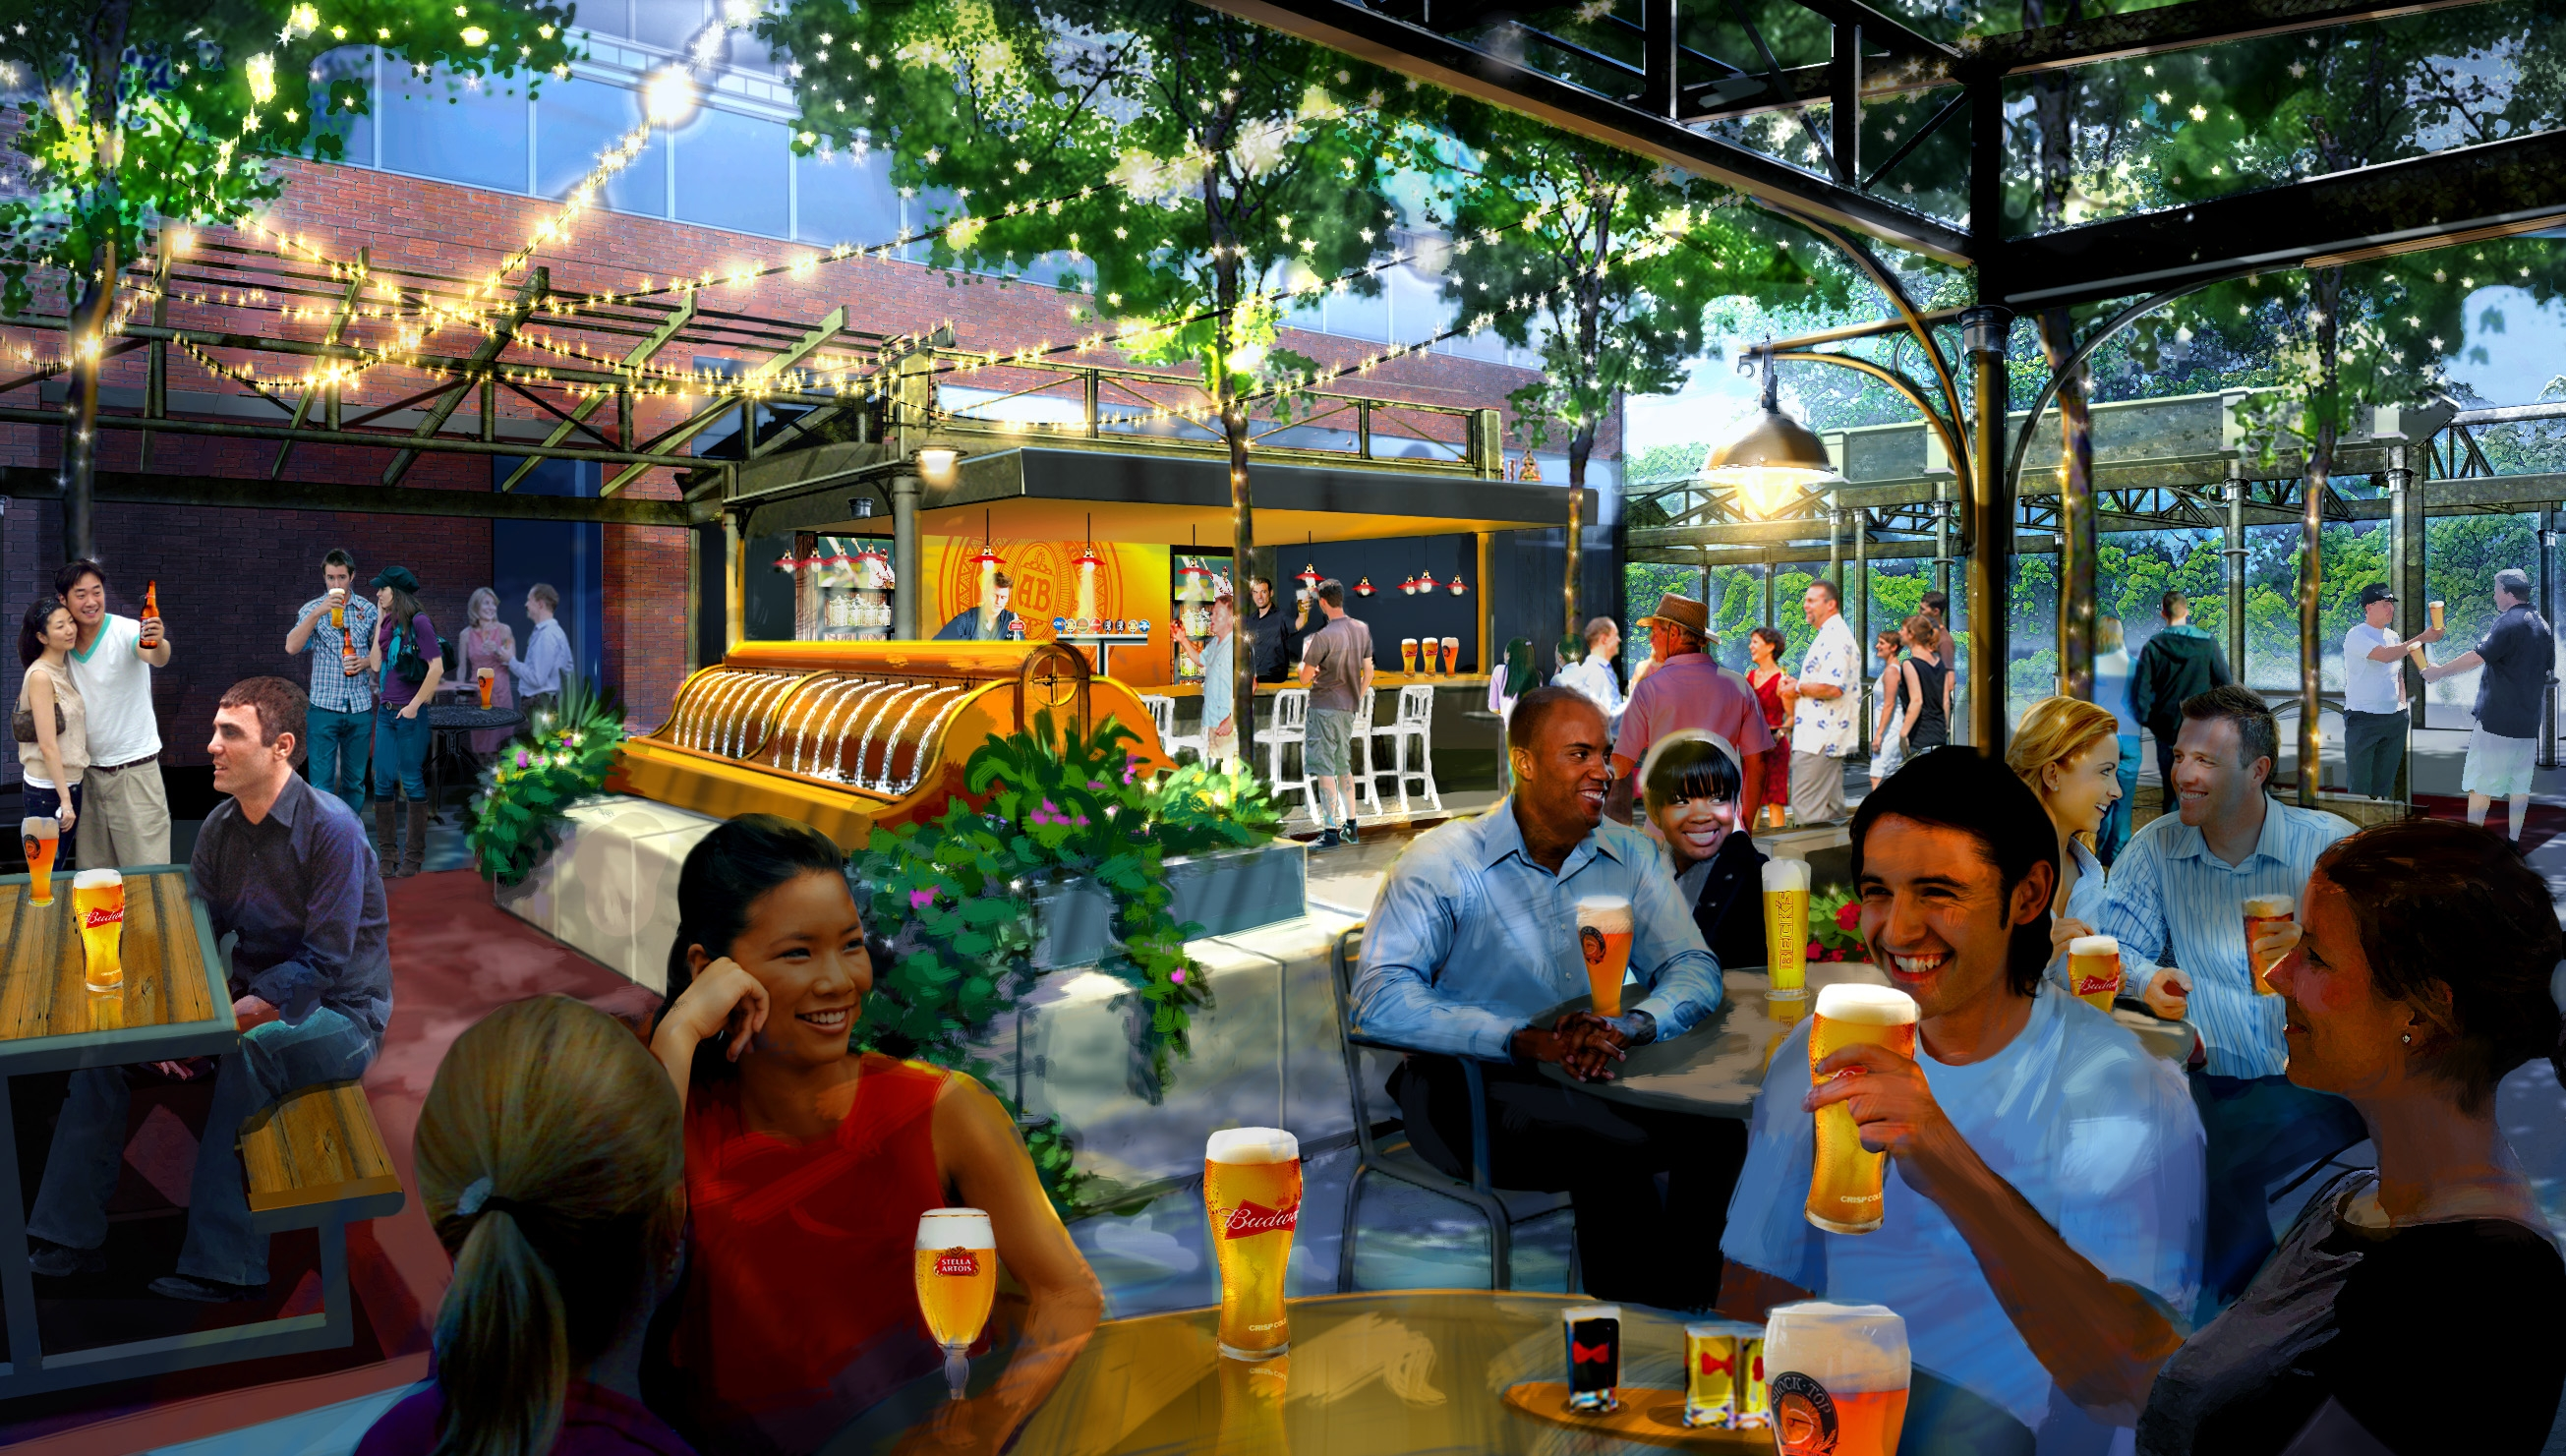 Beer Garten Anheuser Busch Taps Plans For St Louis Biergarten